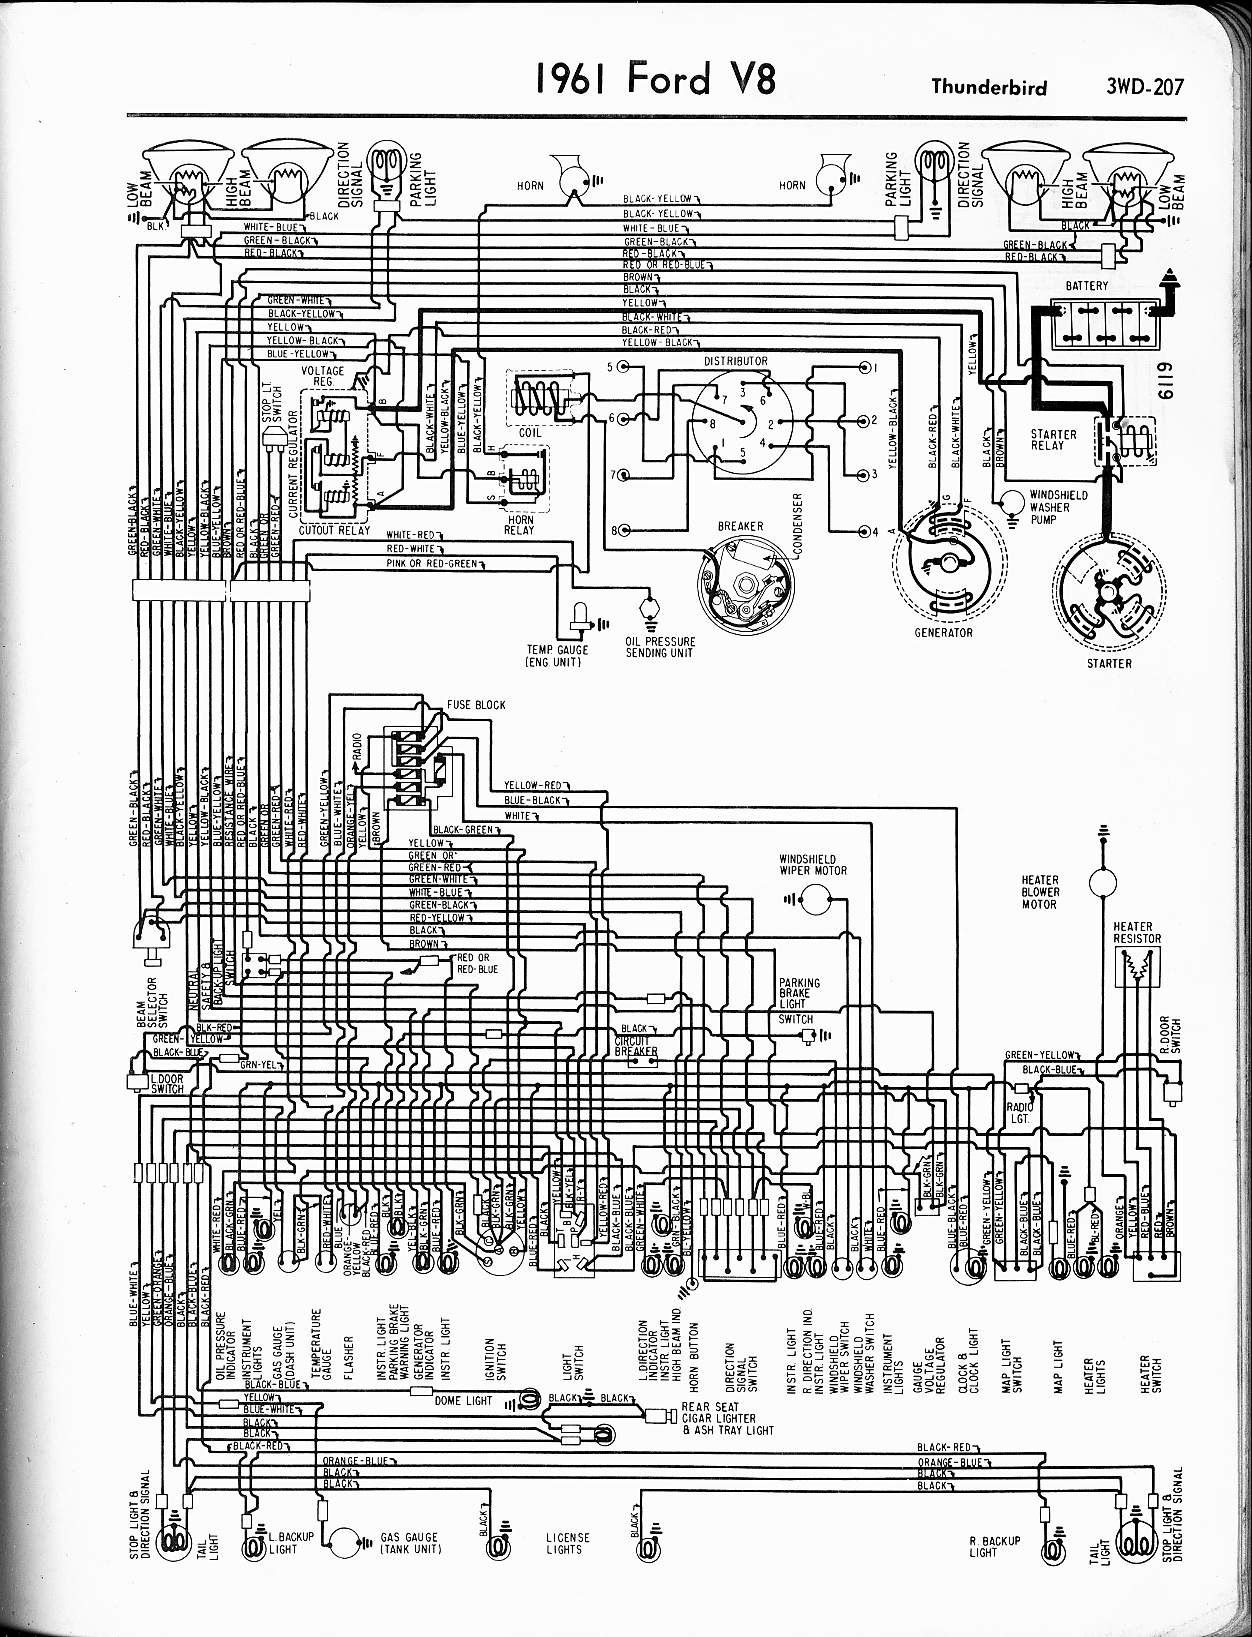 MWire5765 207 57 65 ford wiring diagrams ford wiring diagrams automotive at bayanpartner.co